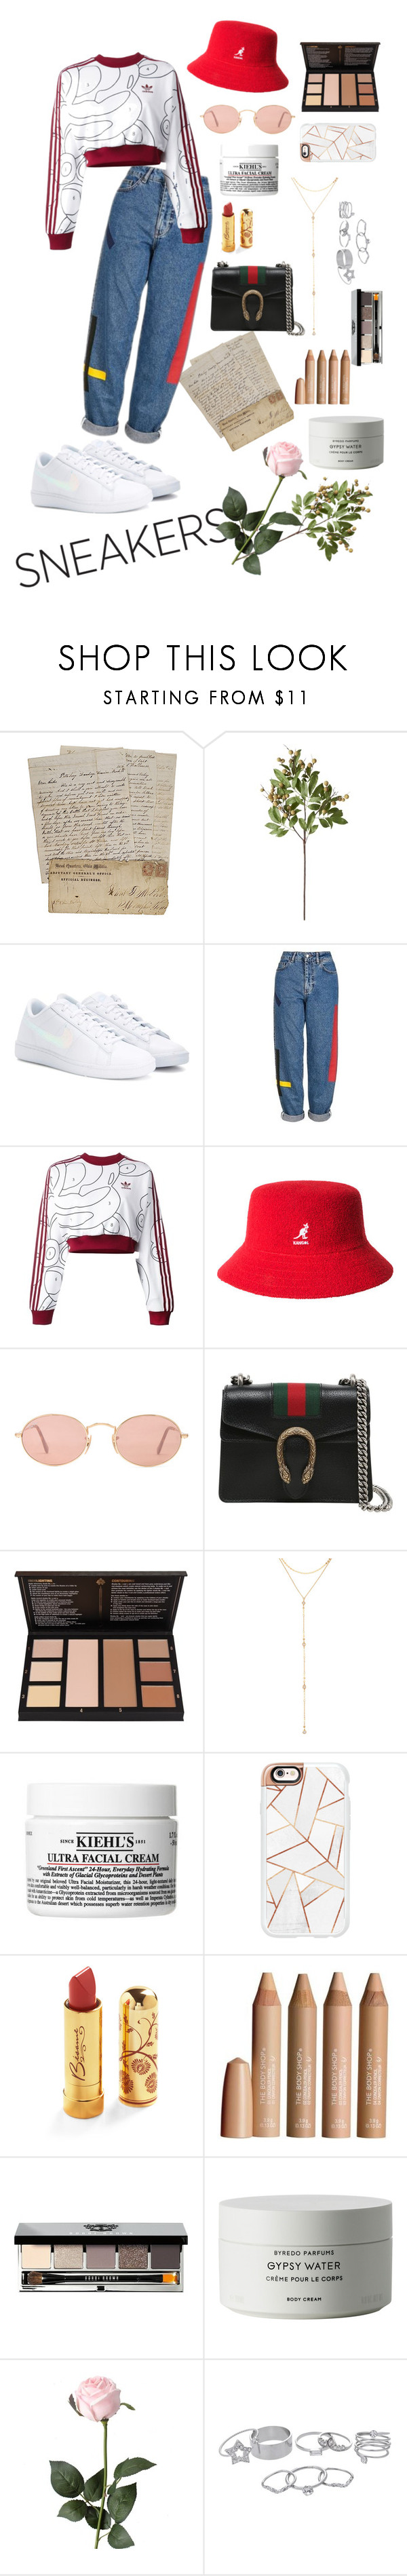 """""""Adidas and Gucci"""" by shopa-holic ❤ liked on Polyvore featuring Crate and Barrel, NIKE, Topshop, adidas Originals, kangol, Ray-Ban, Gucci, Fragments, Casetify and Betsey Johnson"""